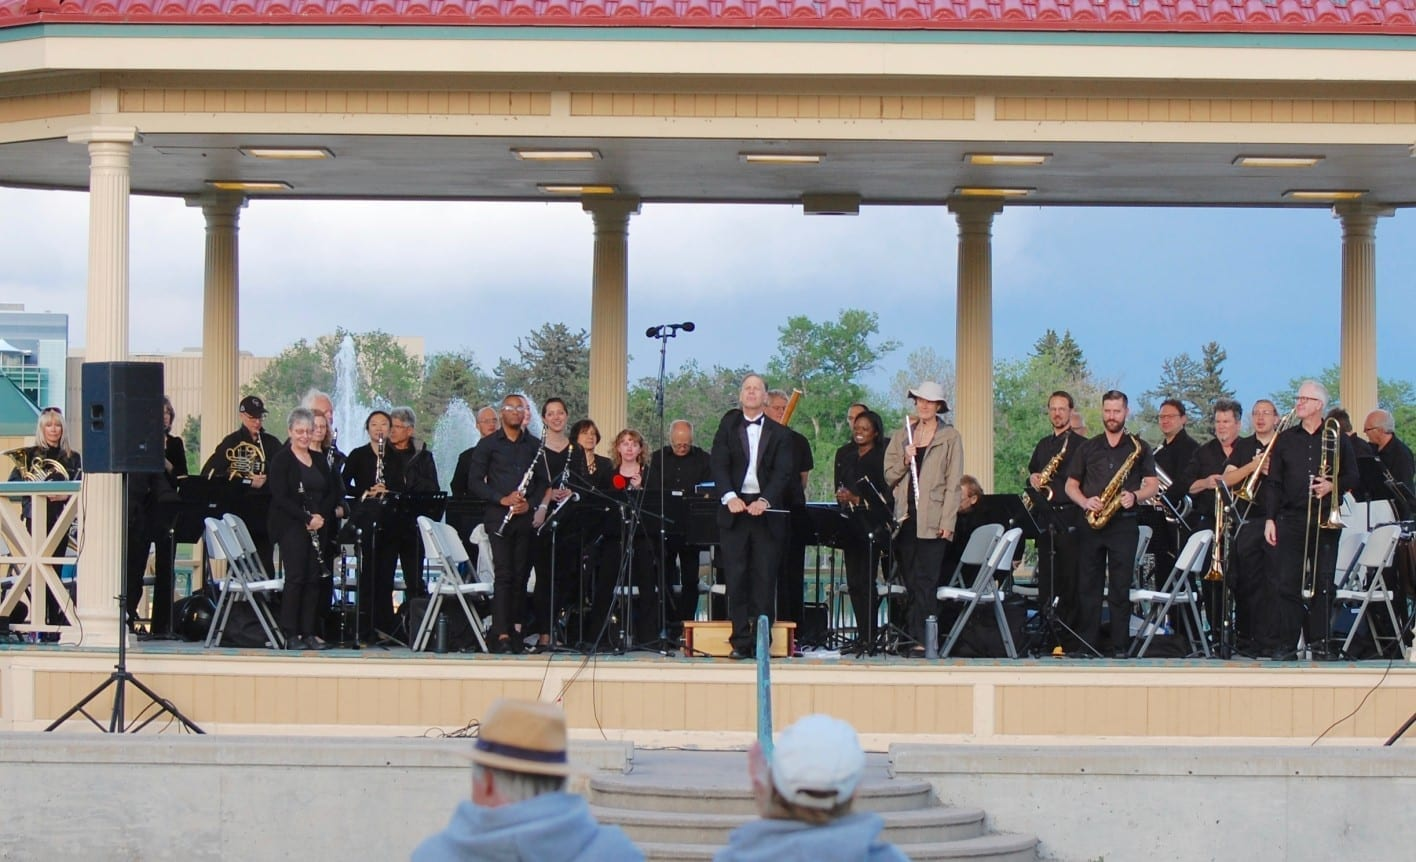 denver municipal band at city park